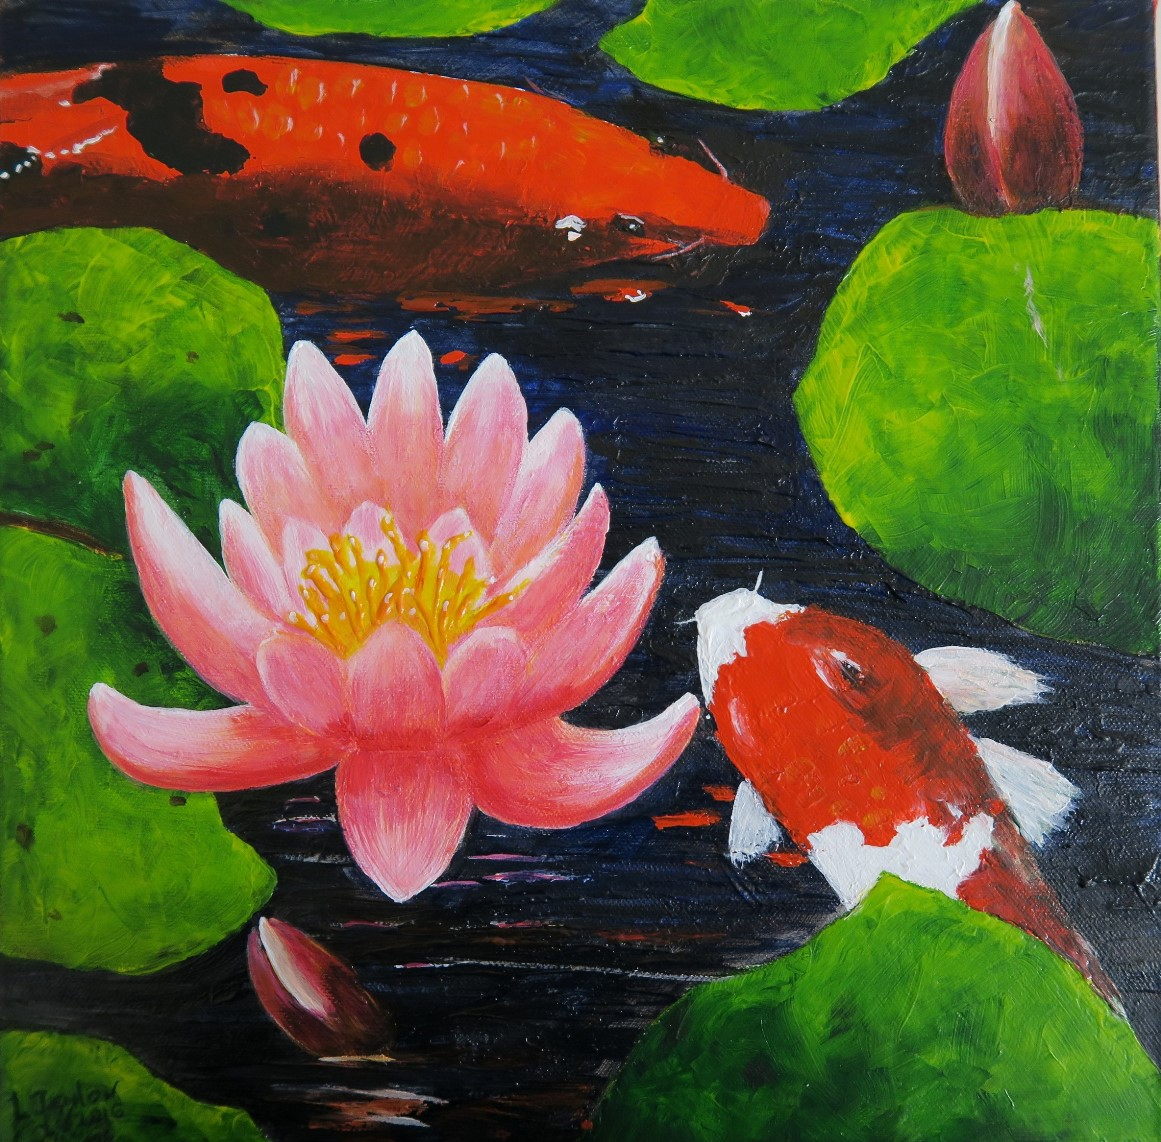 Koi & Lillies - Prints available